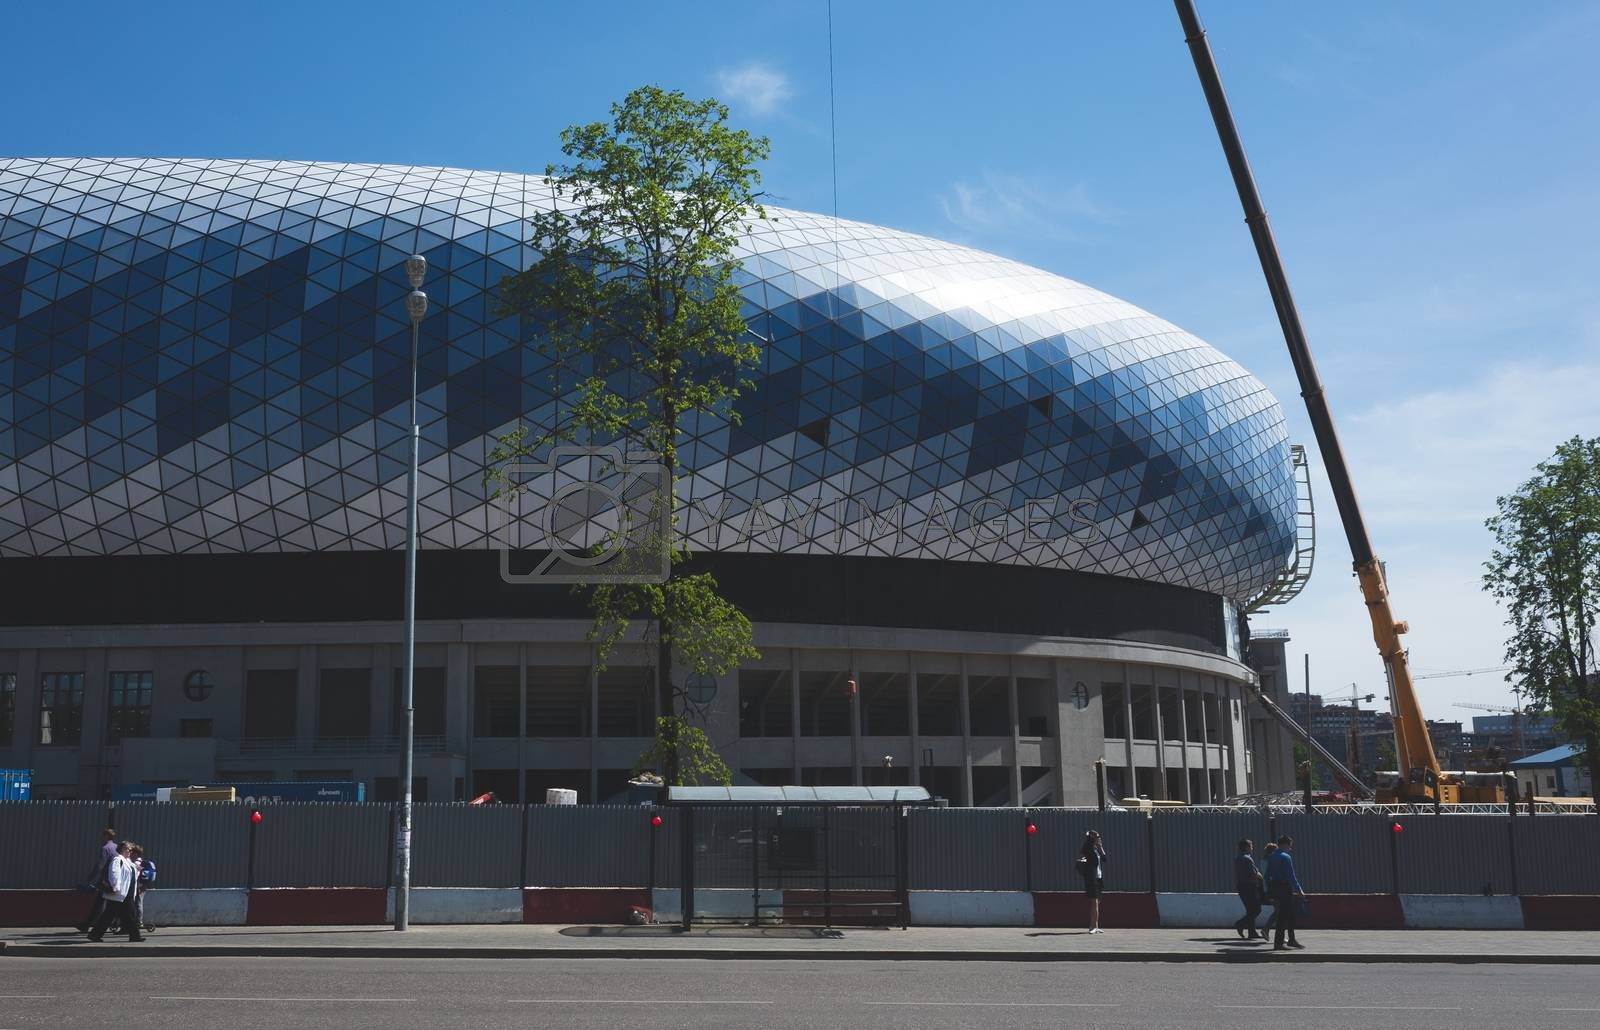 May 4, 2018 Moscow, Russia construction  multi-purpose stadium VTB Arena on the site of the old Dynamo stadium in Moscow.